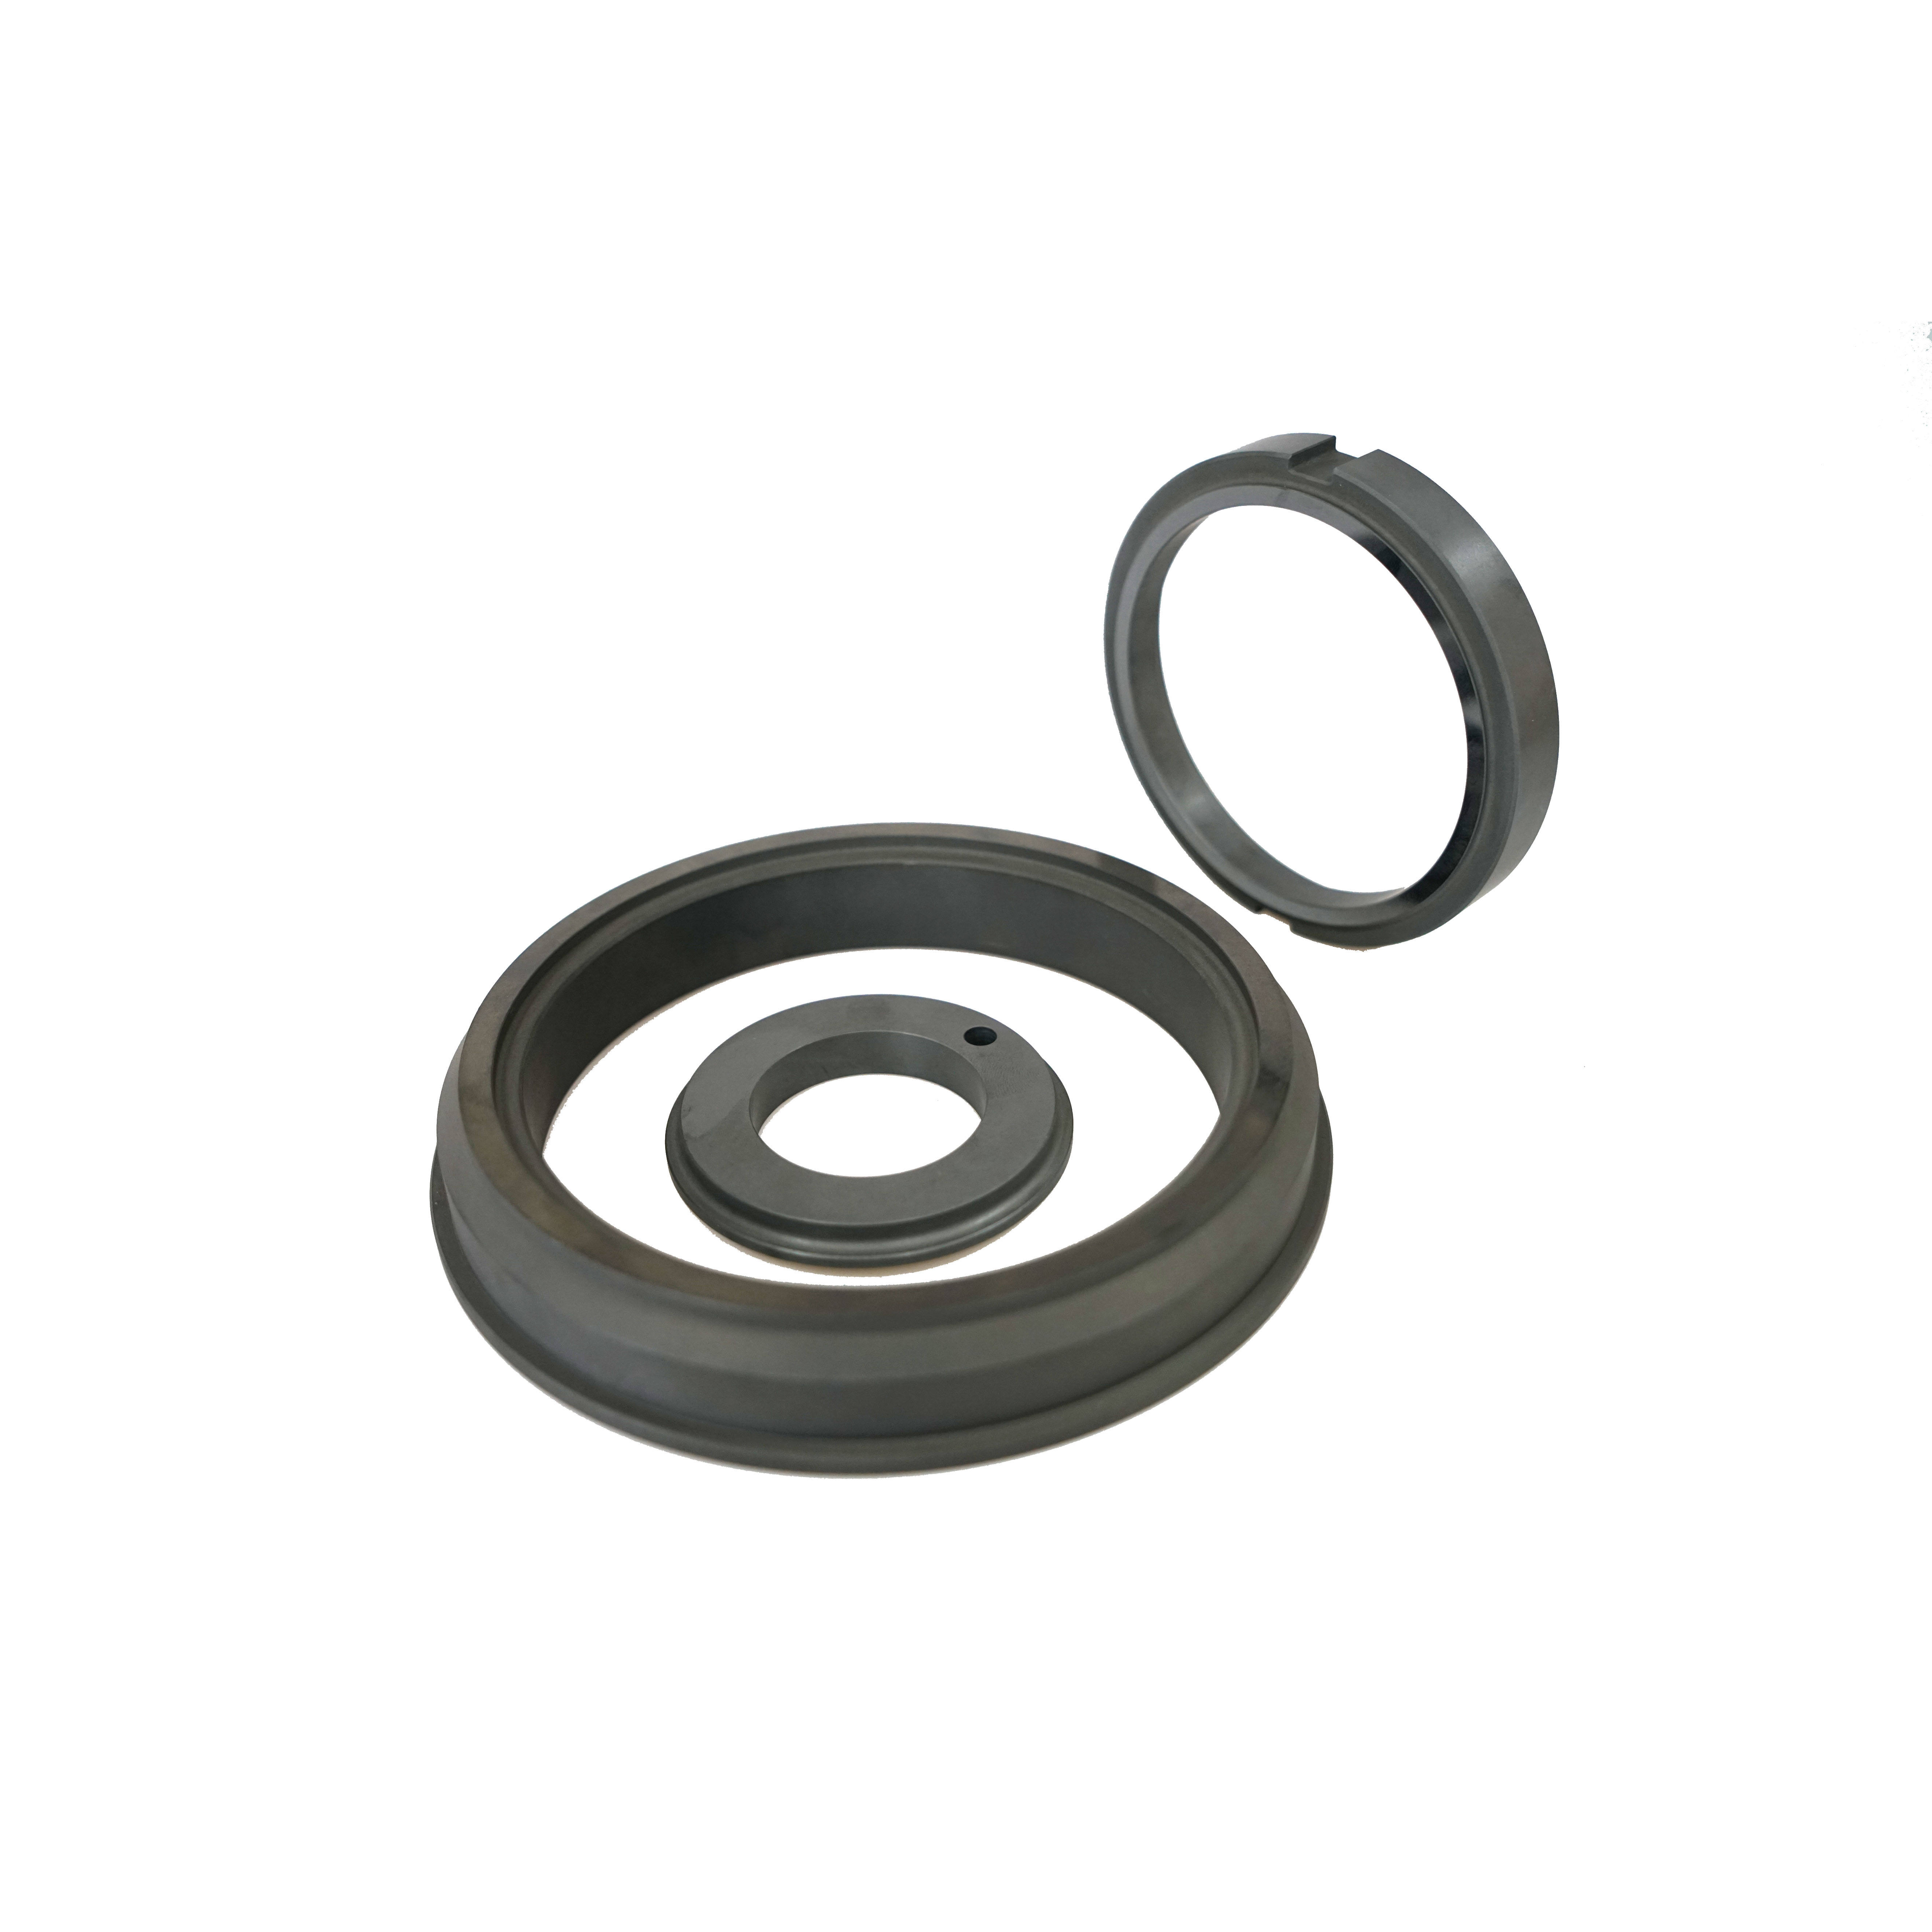 high resistance /Refractory Sintered Silicon carbide graphite (SSIC+C) Ceramic Sealing Parts polishing ring ring seal